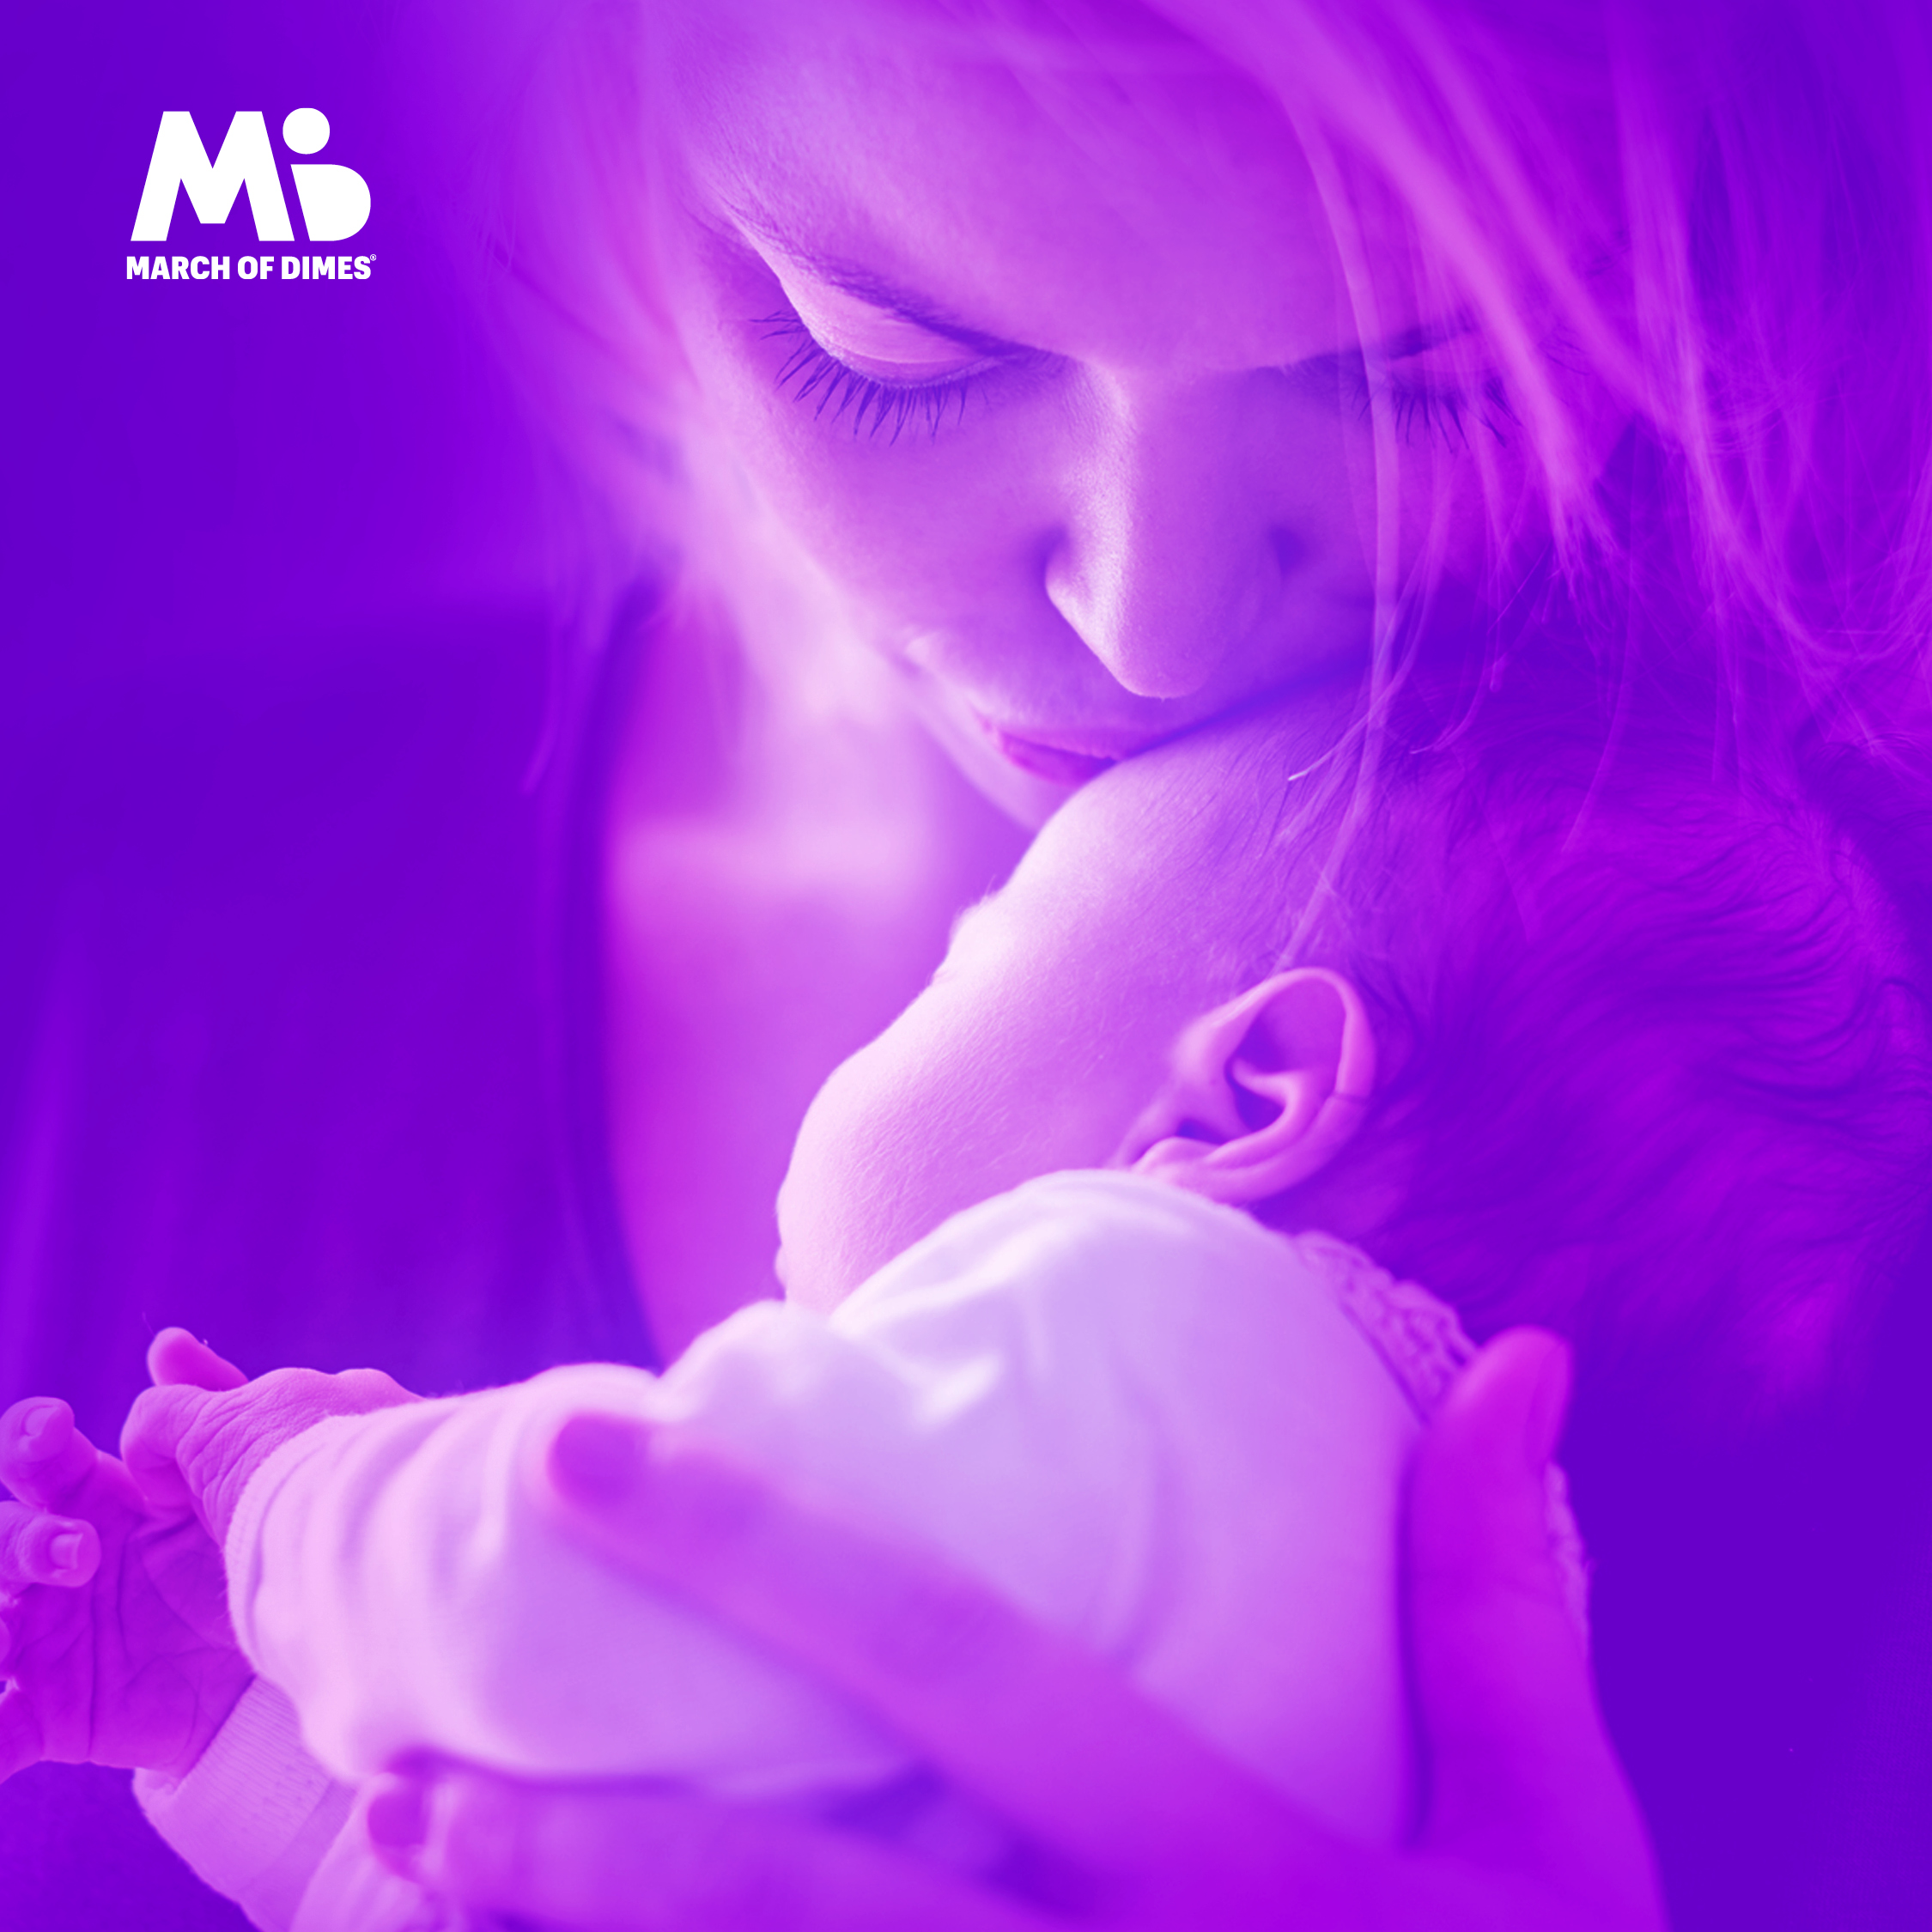 Prematurity Awareness Month 2019